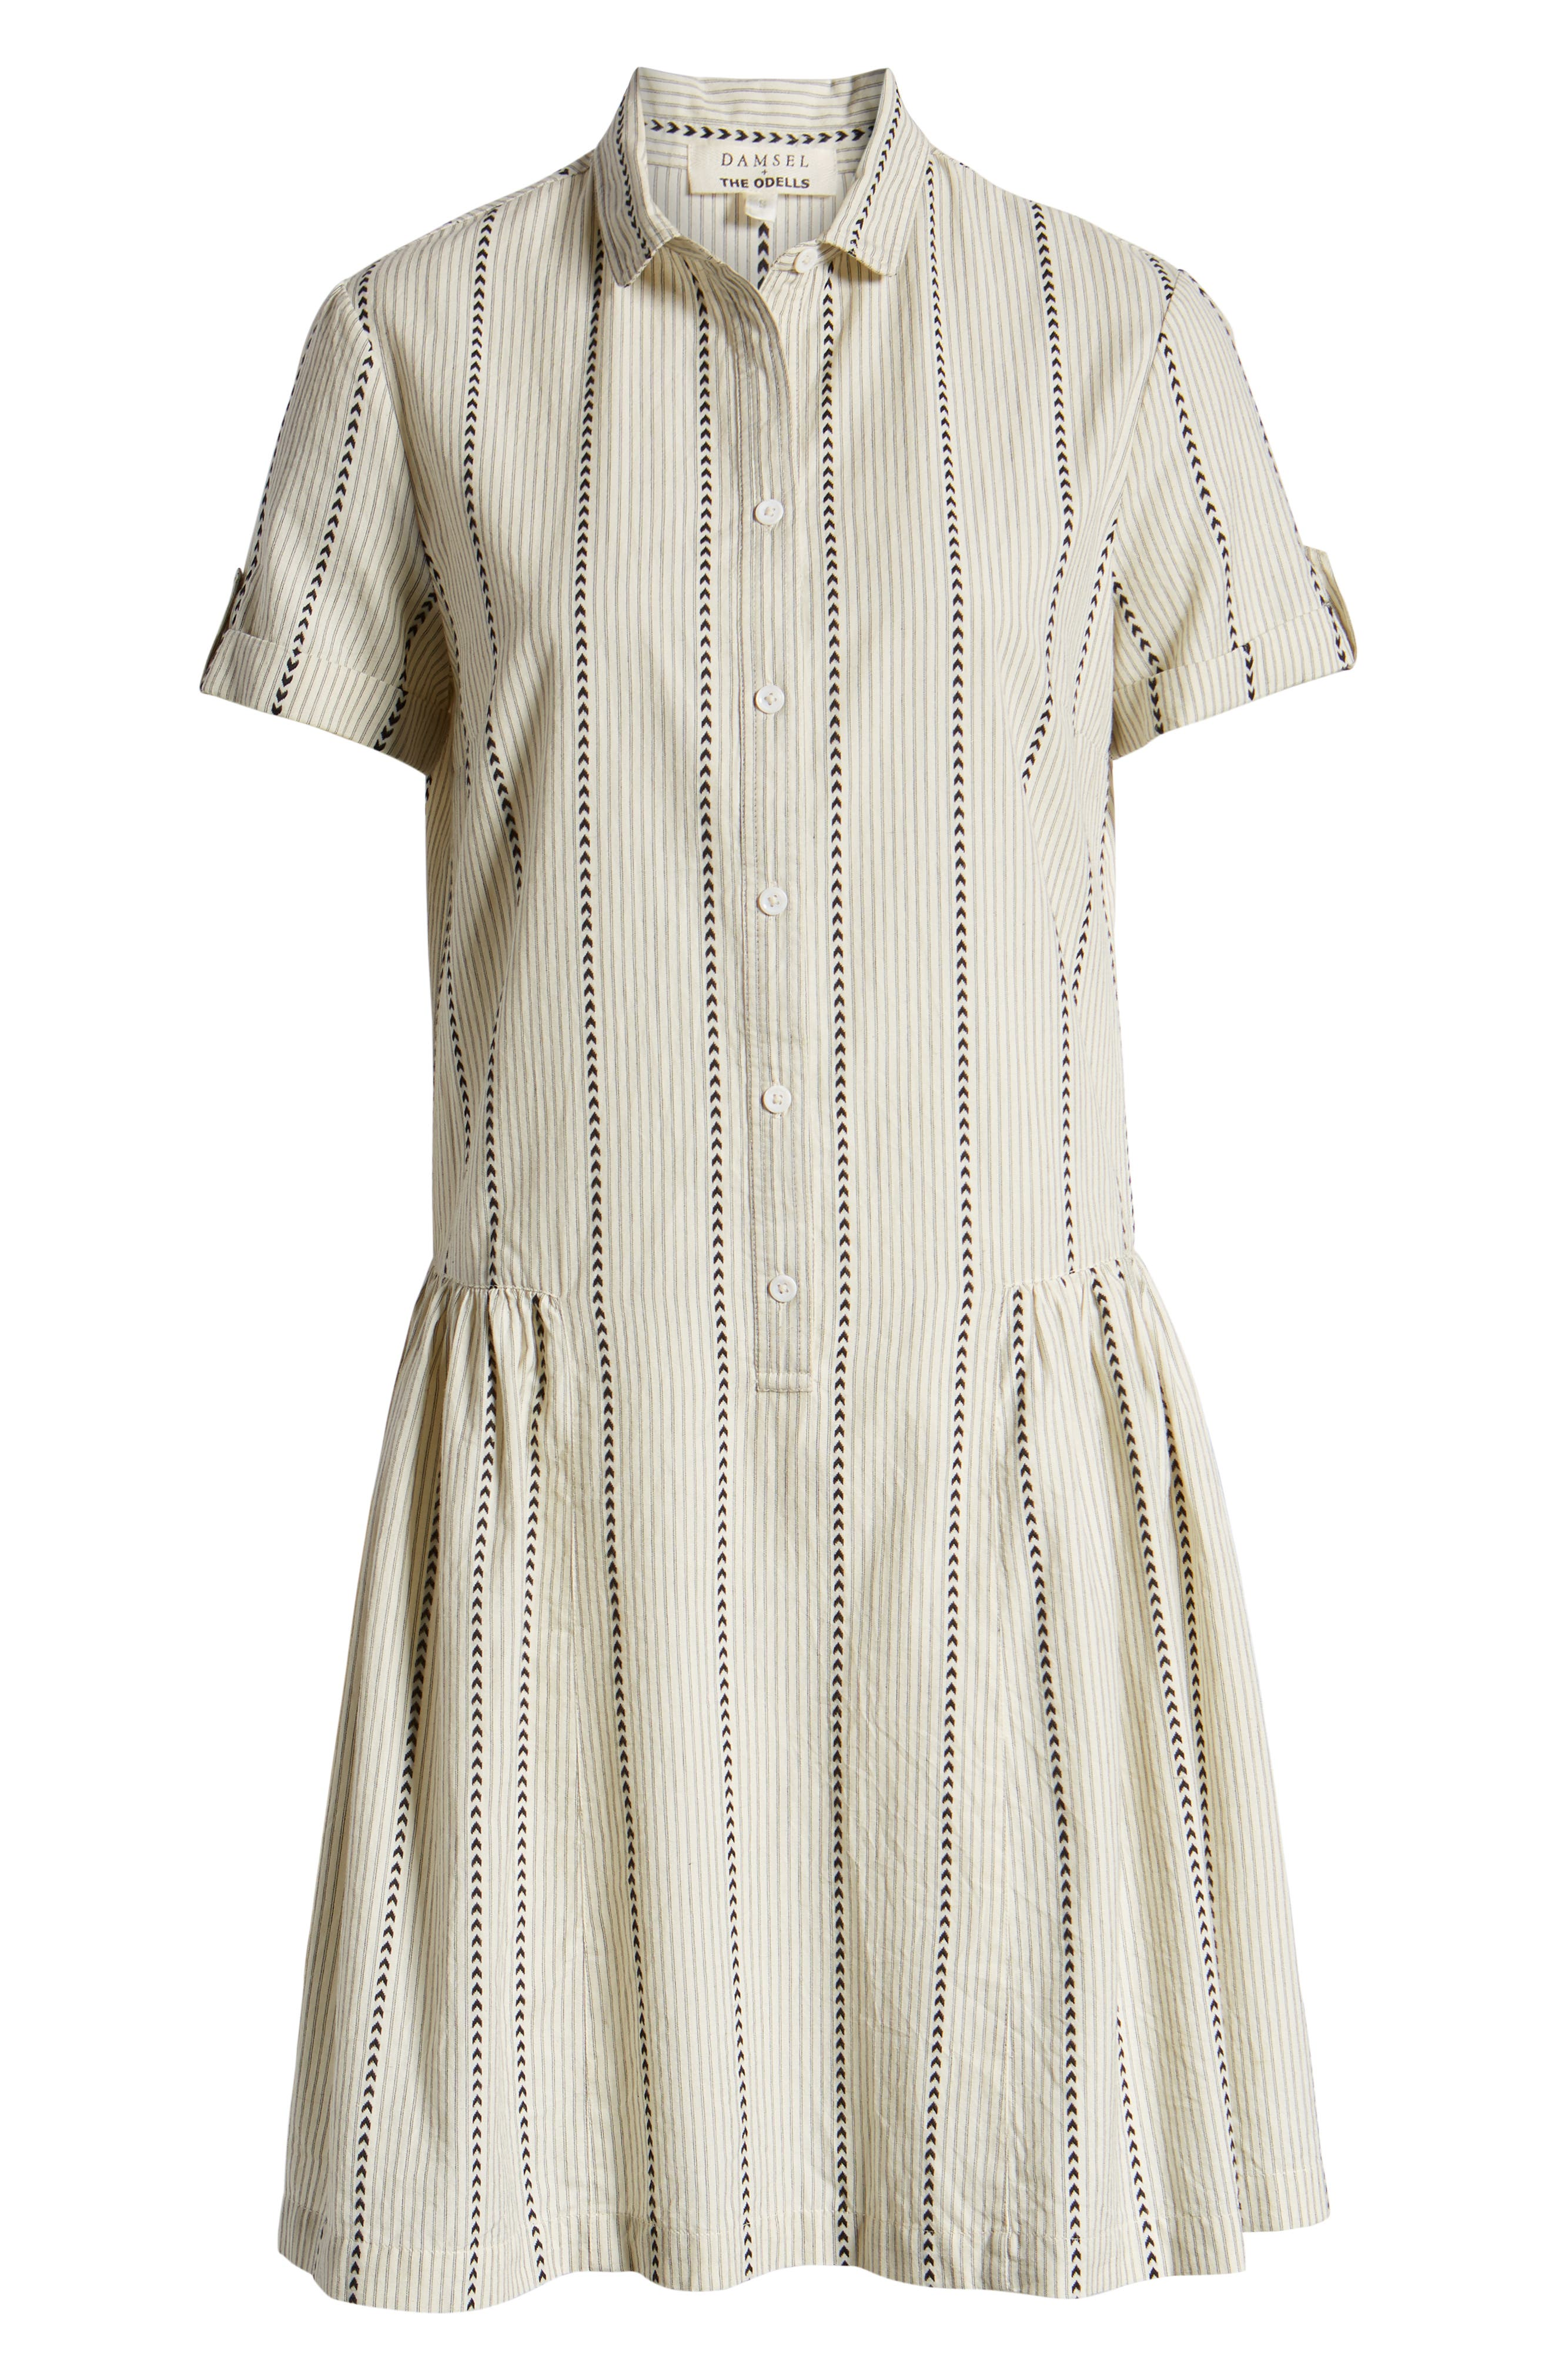 ,                             Damsel x THE ODELLS Easy Button-Up Cotton Dress,                             Alternate thumbnail 7, color,                             250